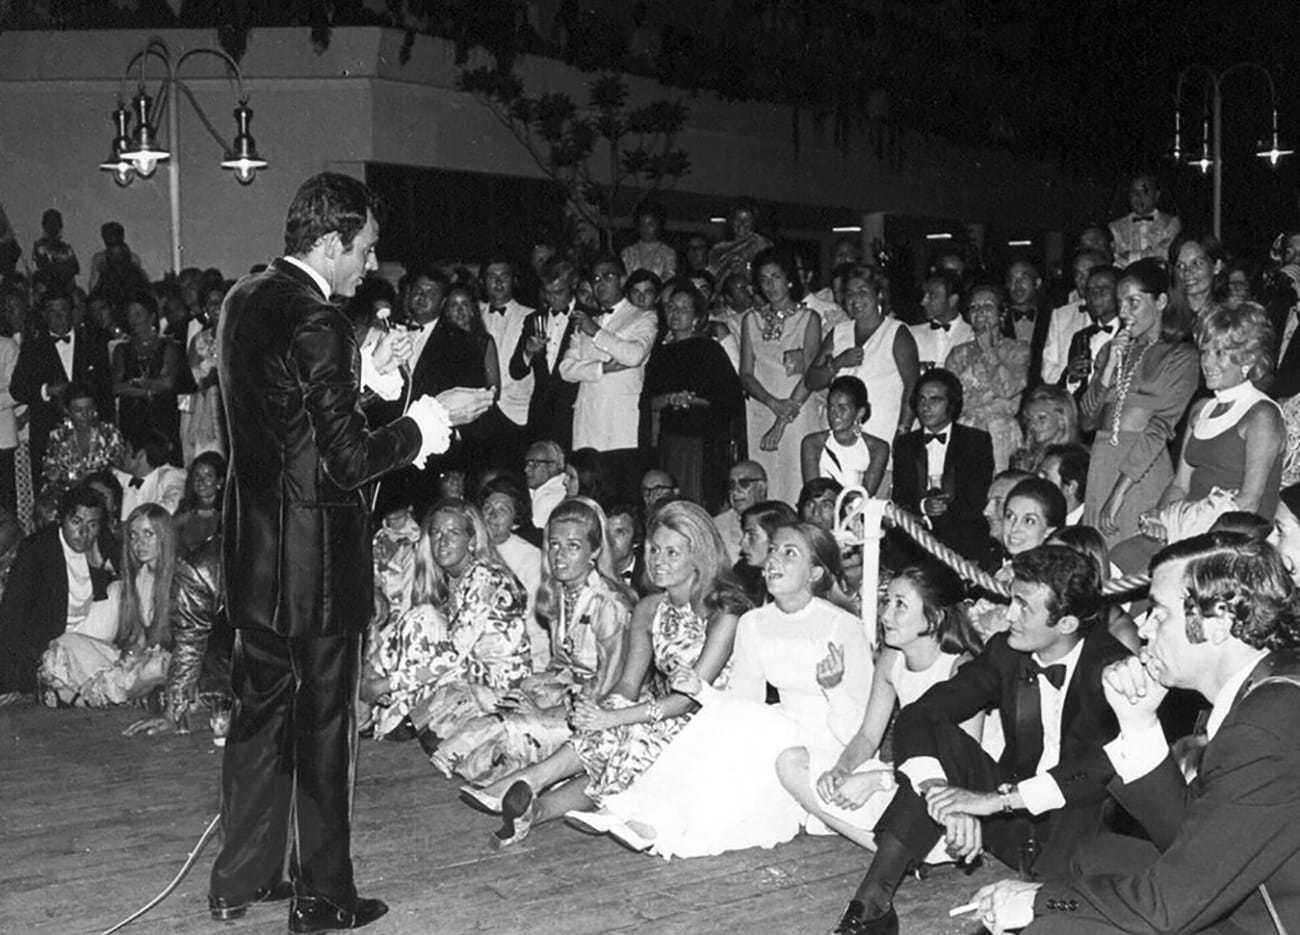 Puerto Banús A very young Julio Iglesias provided the entertainment at the inauguration party